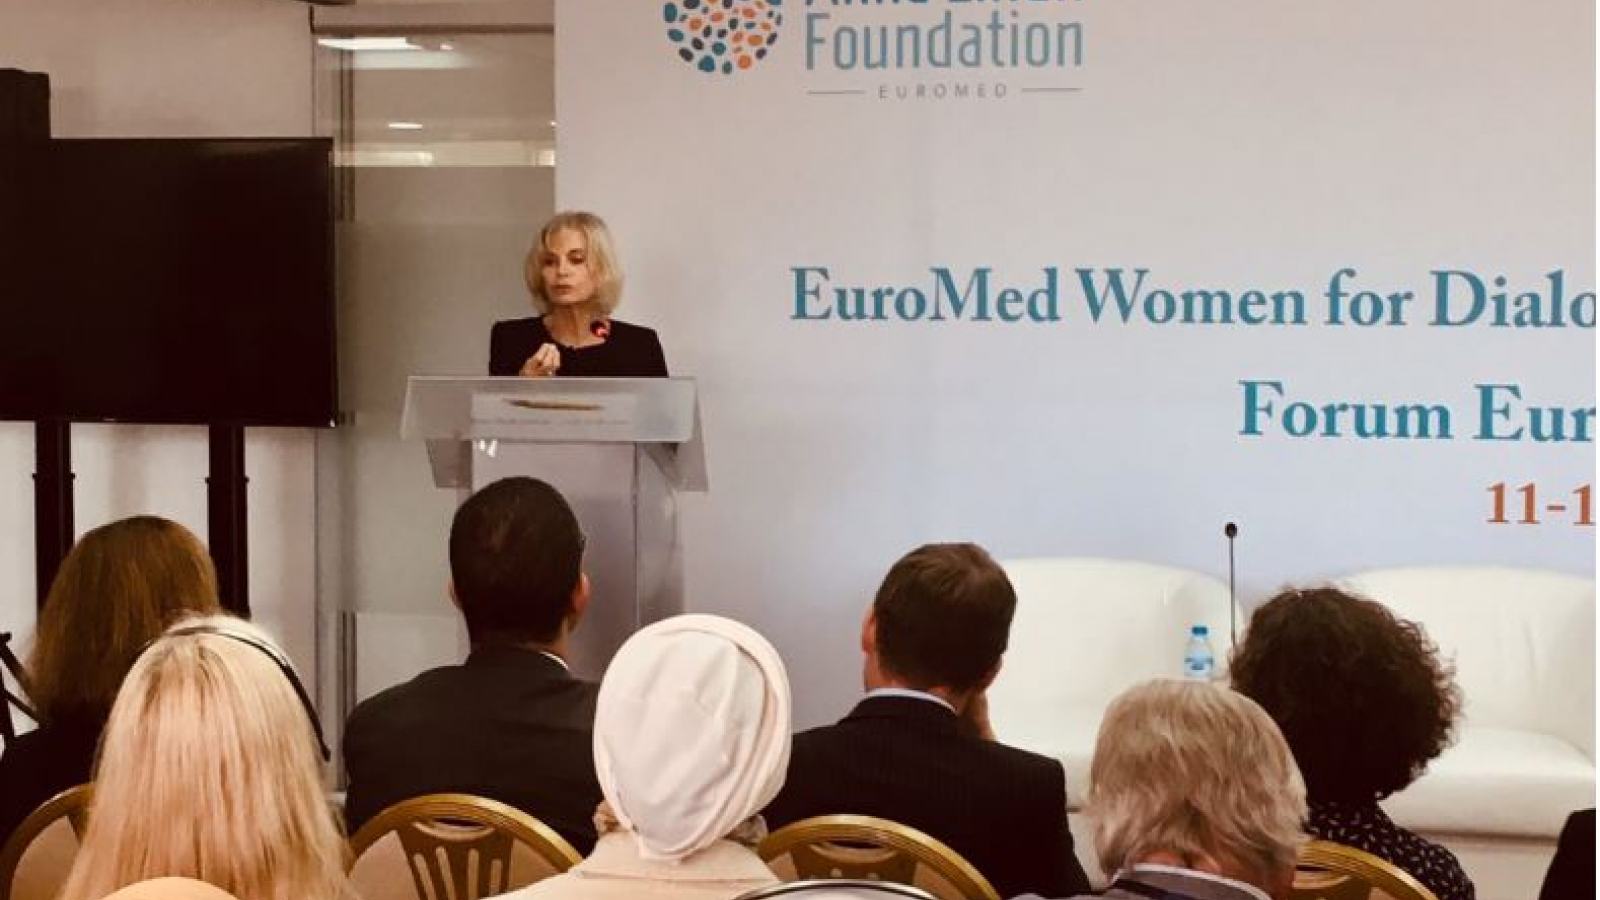 The EuroMed Women for Dialogue Forum